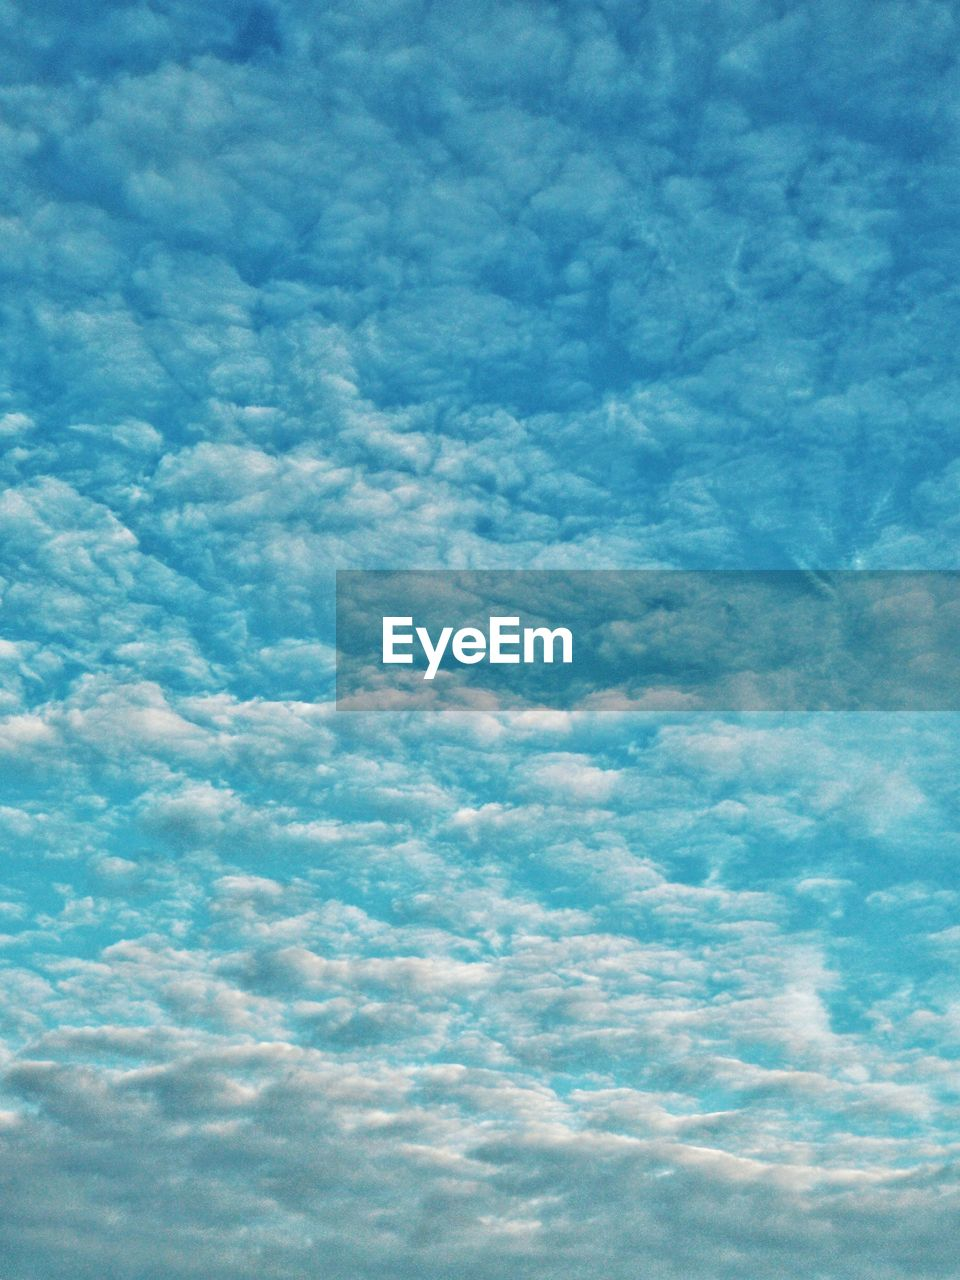 cloud - sky, sky, beauty in nature, scenics - nature, full frame, no people, tranquility, blue, backgrounds, tranquil scene, nature, cloudscape, low angle view, white color, day, outdoors, idyllic, meteorology, fluffy